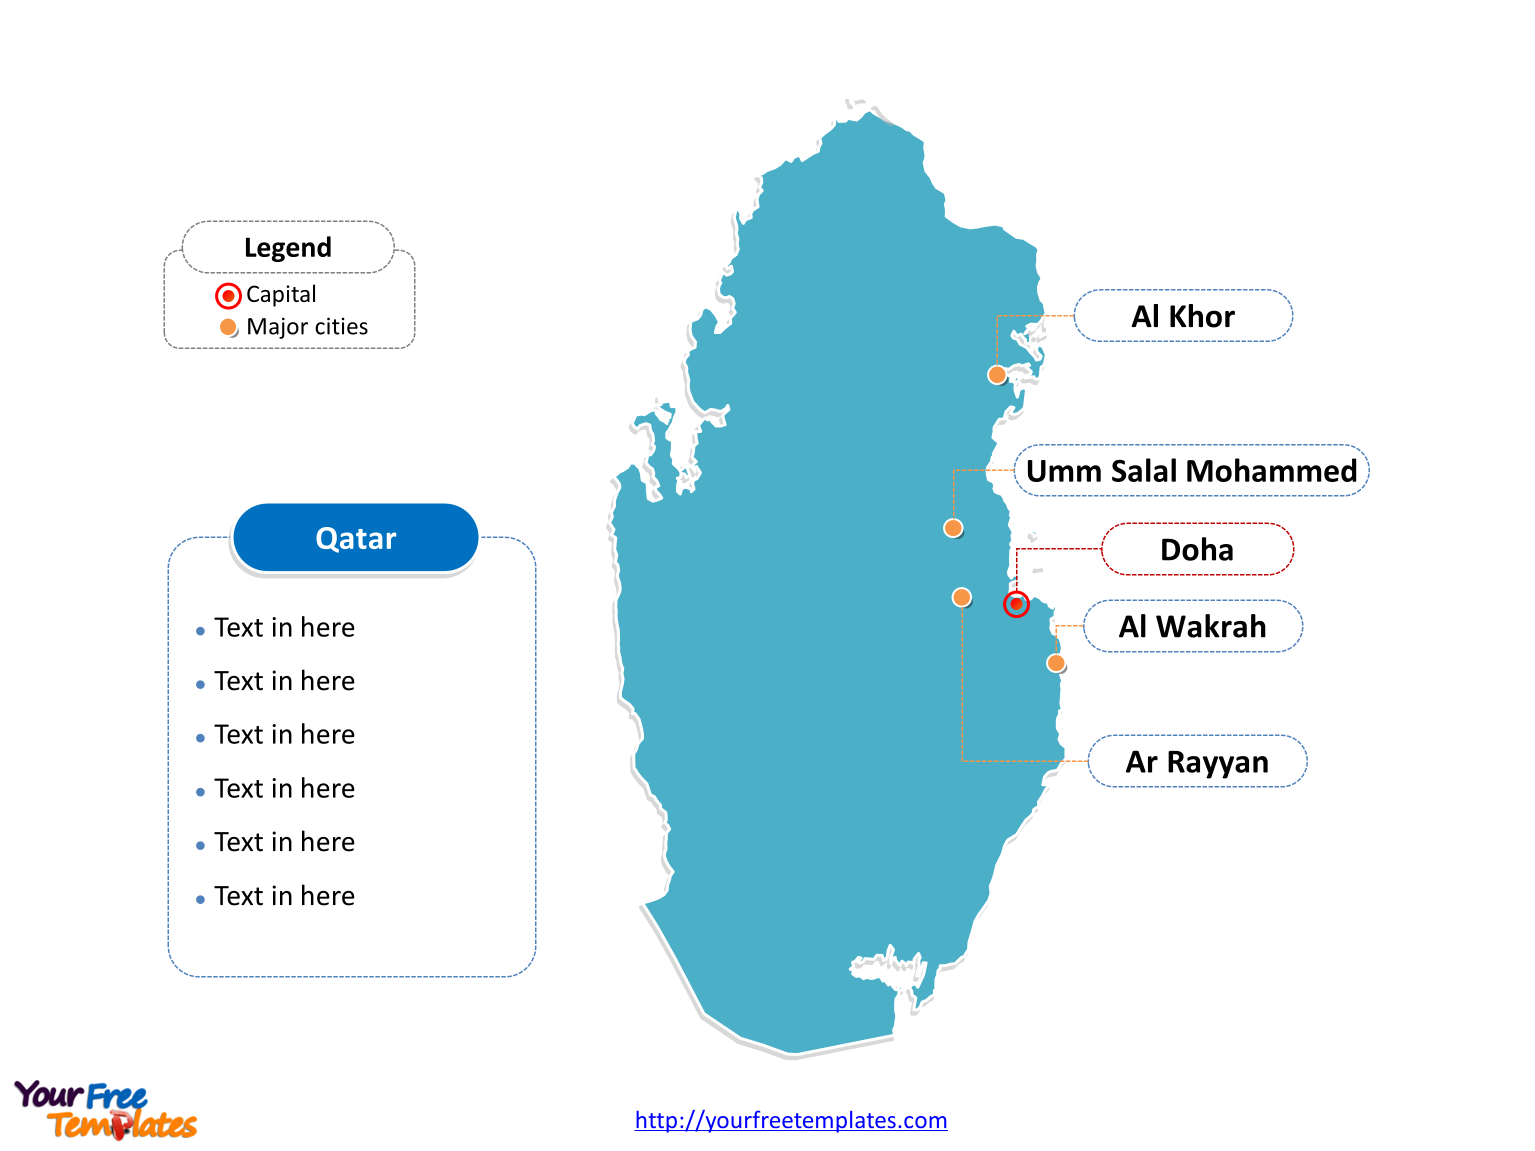 Qatar Outline map labeled with cities